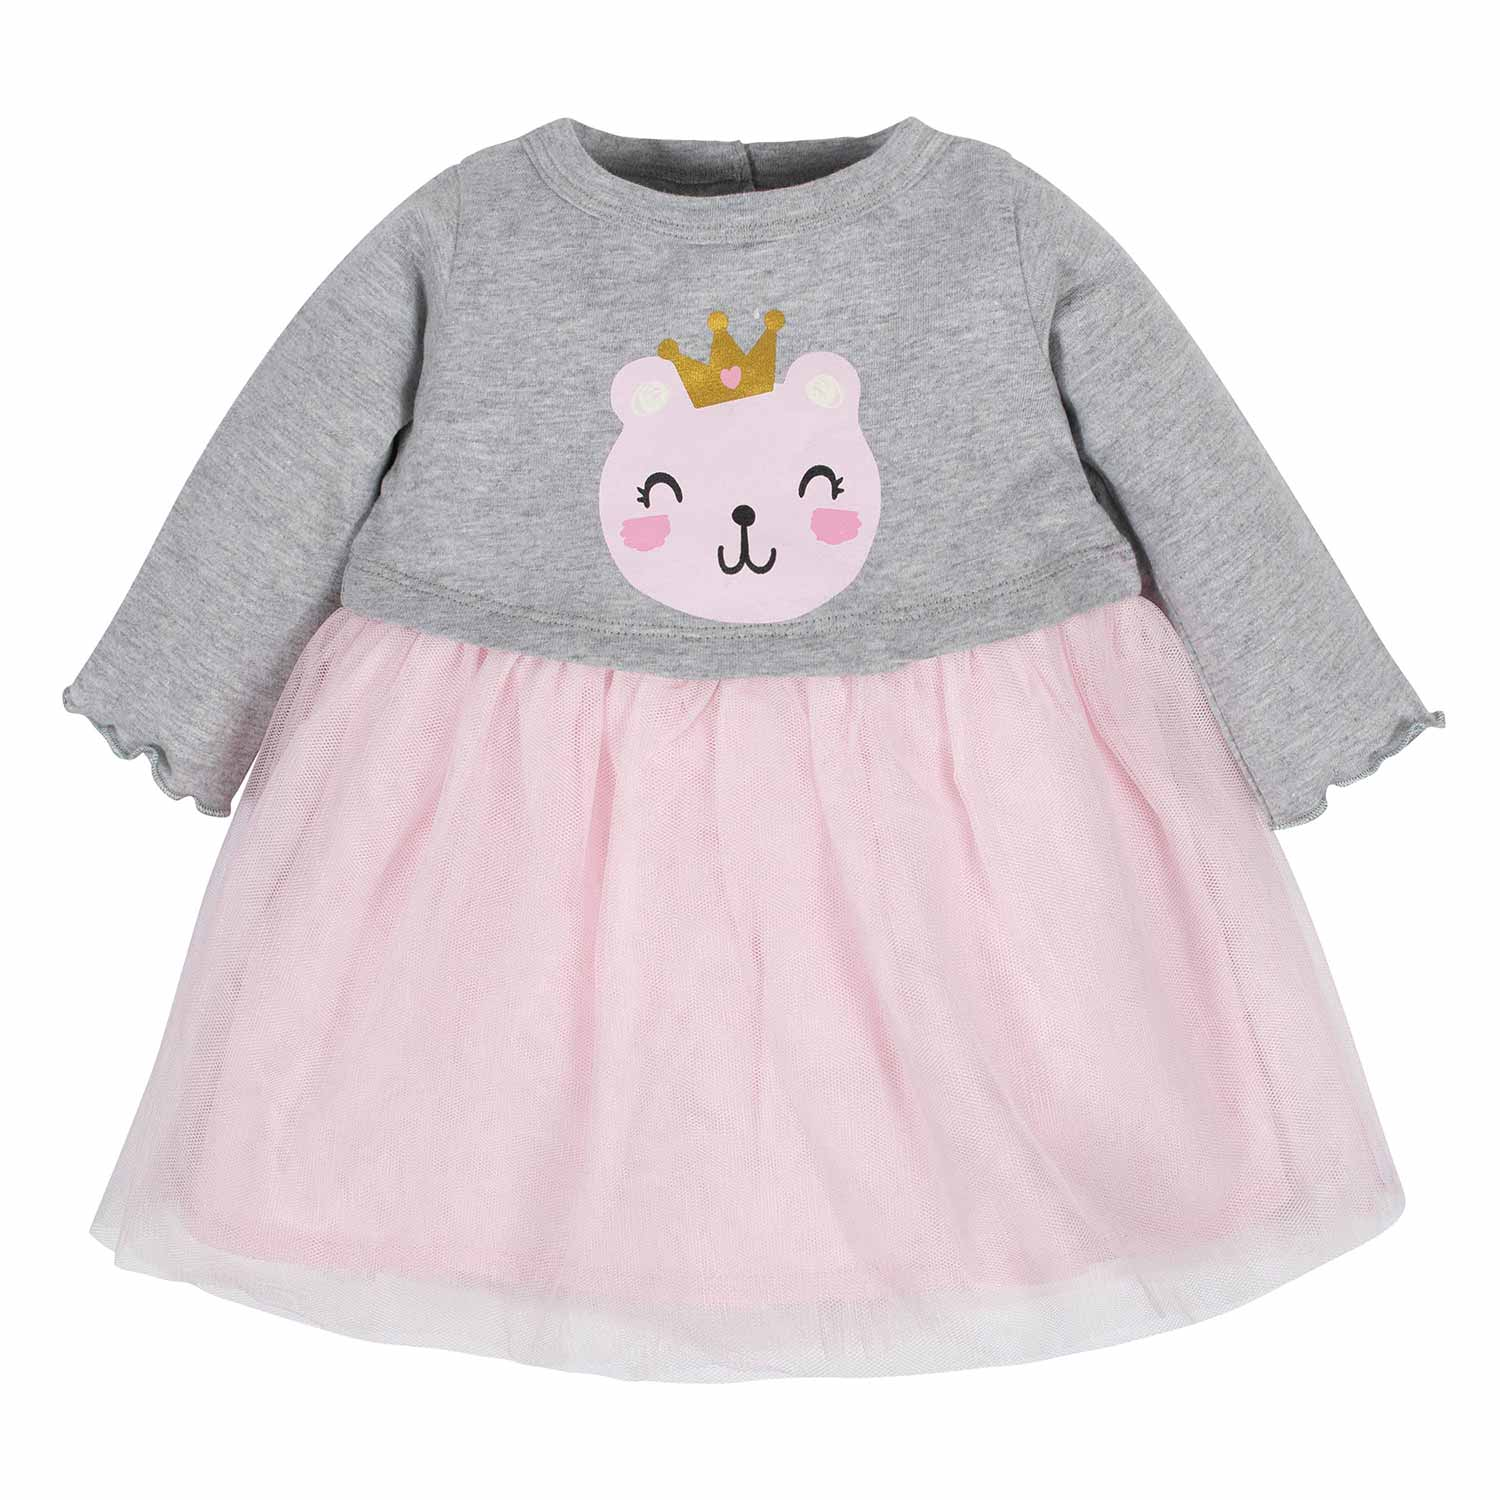 Baby Girls Princess Bear Tulle Dress